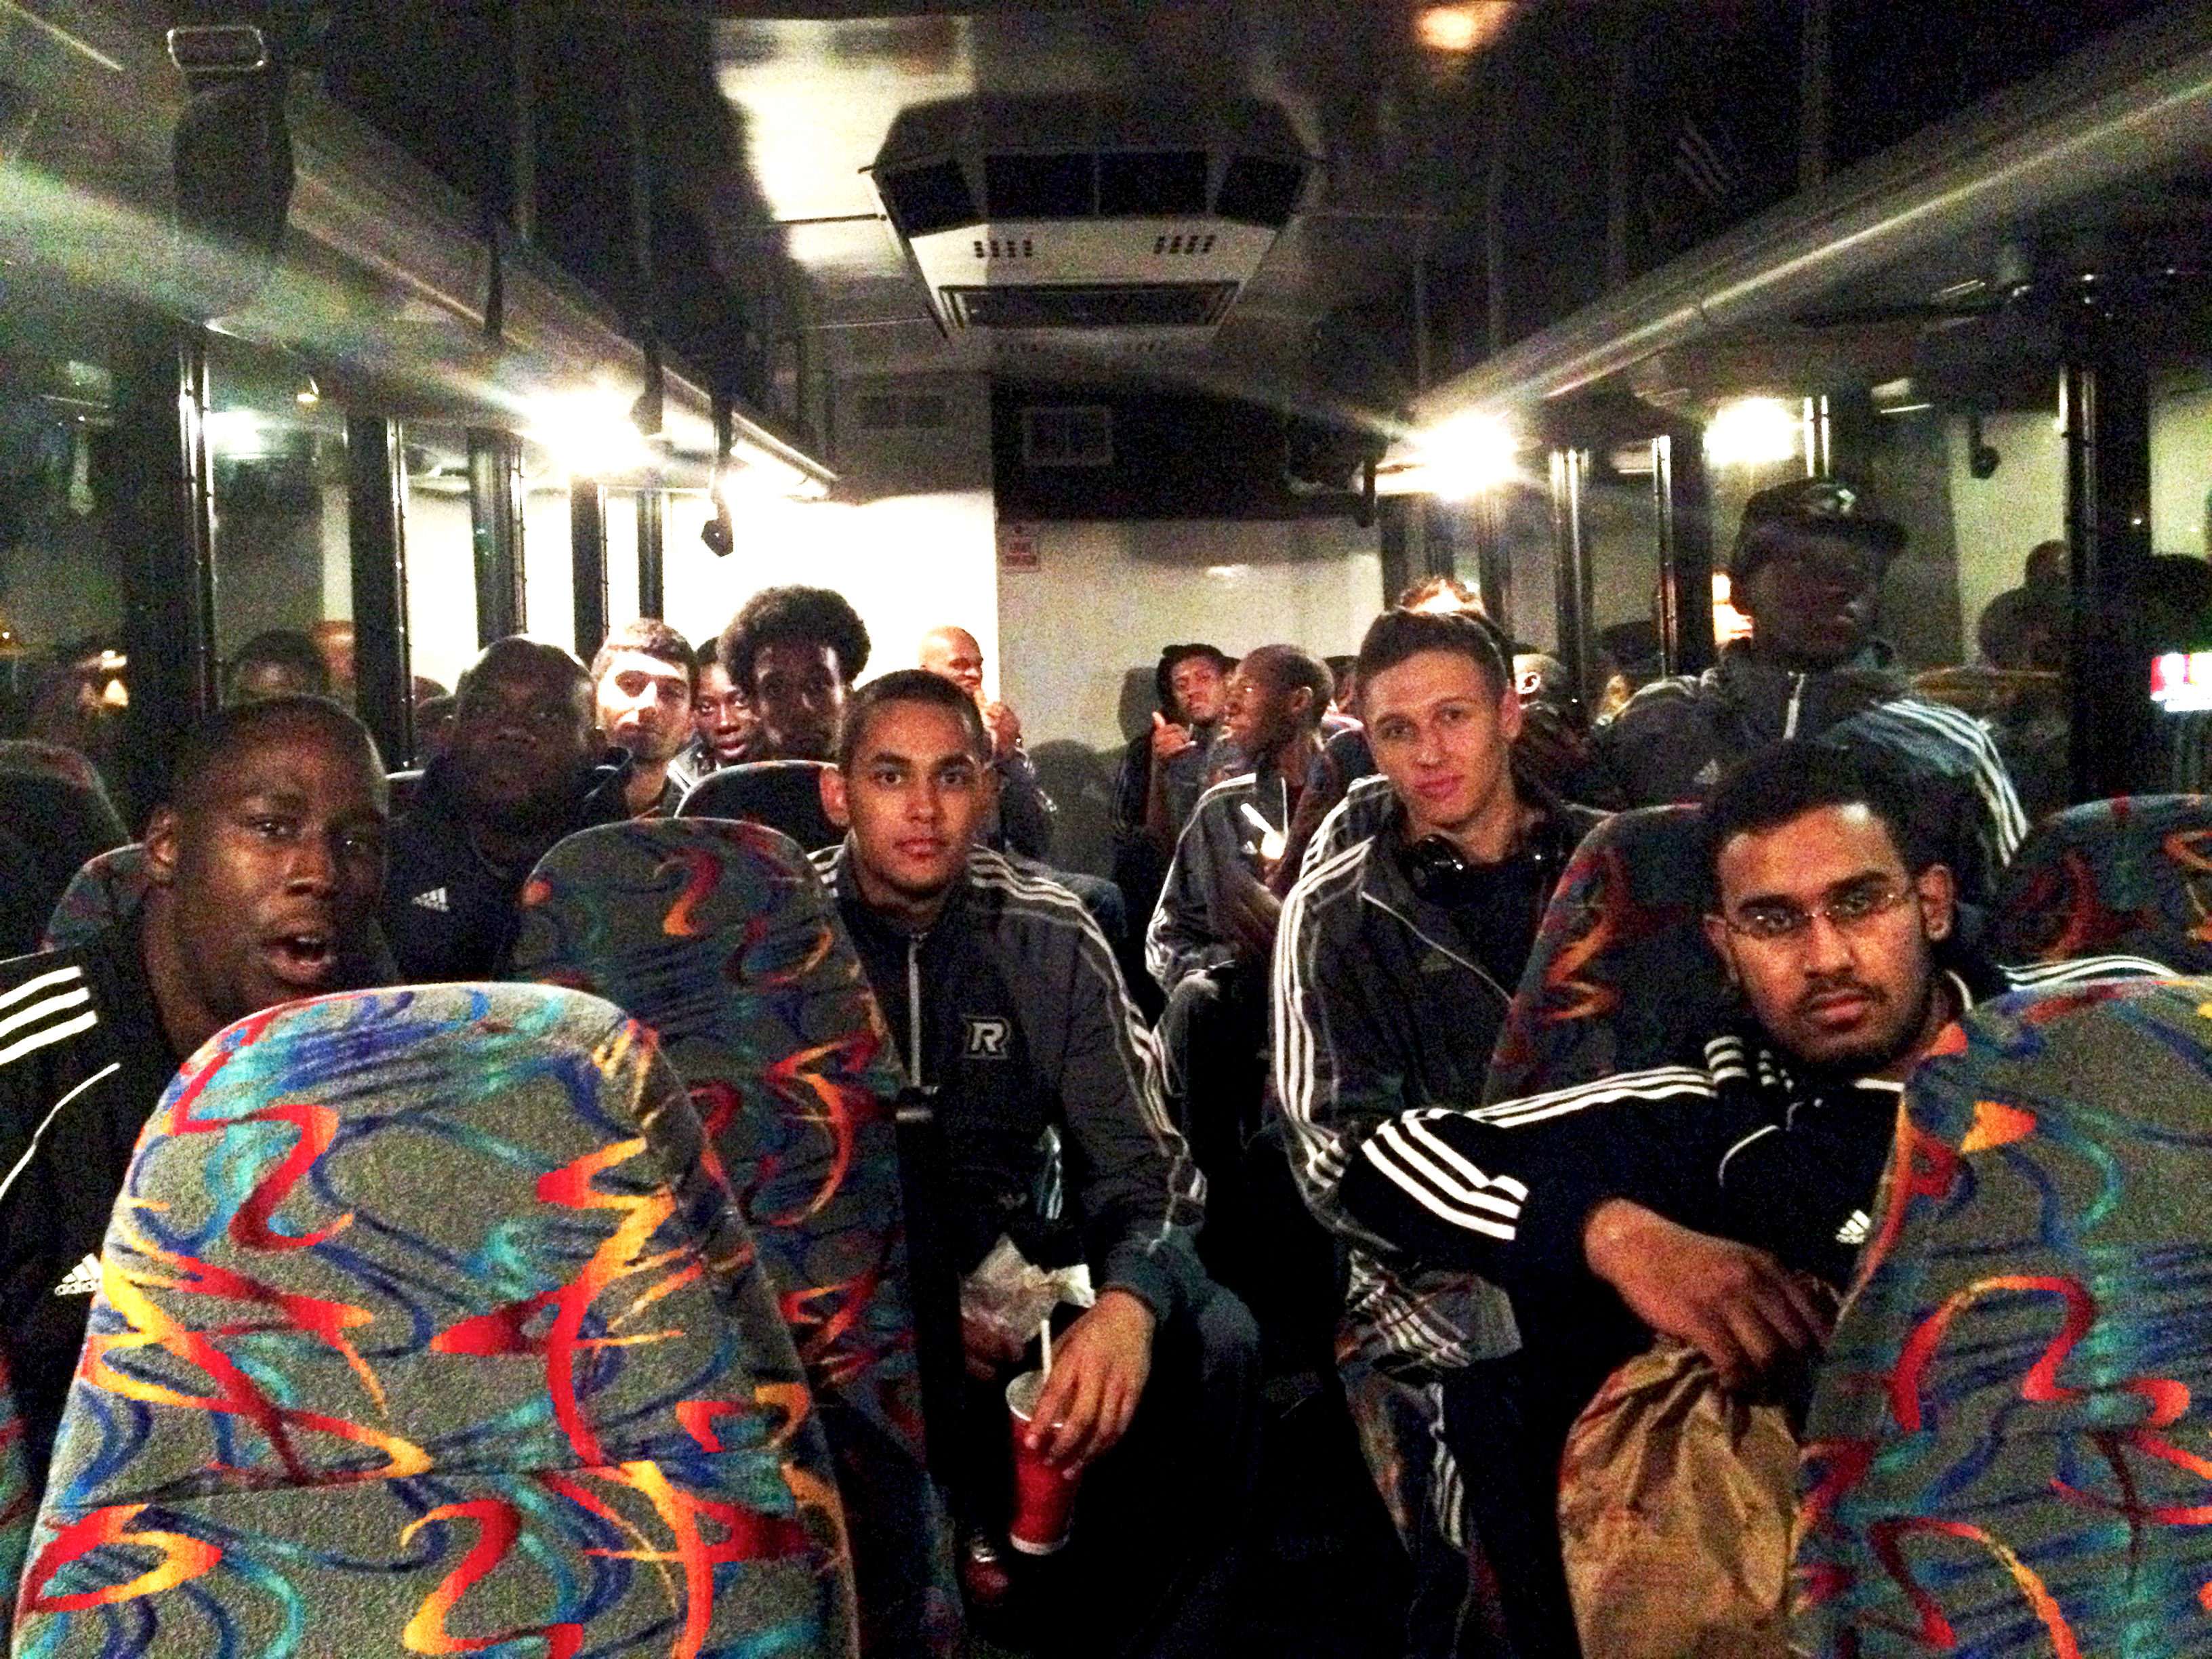 Ryerson men's basketball team 2013 on the road to Kingston